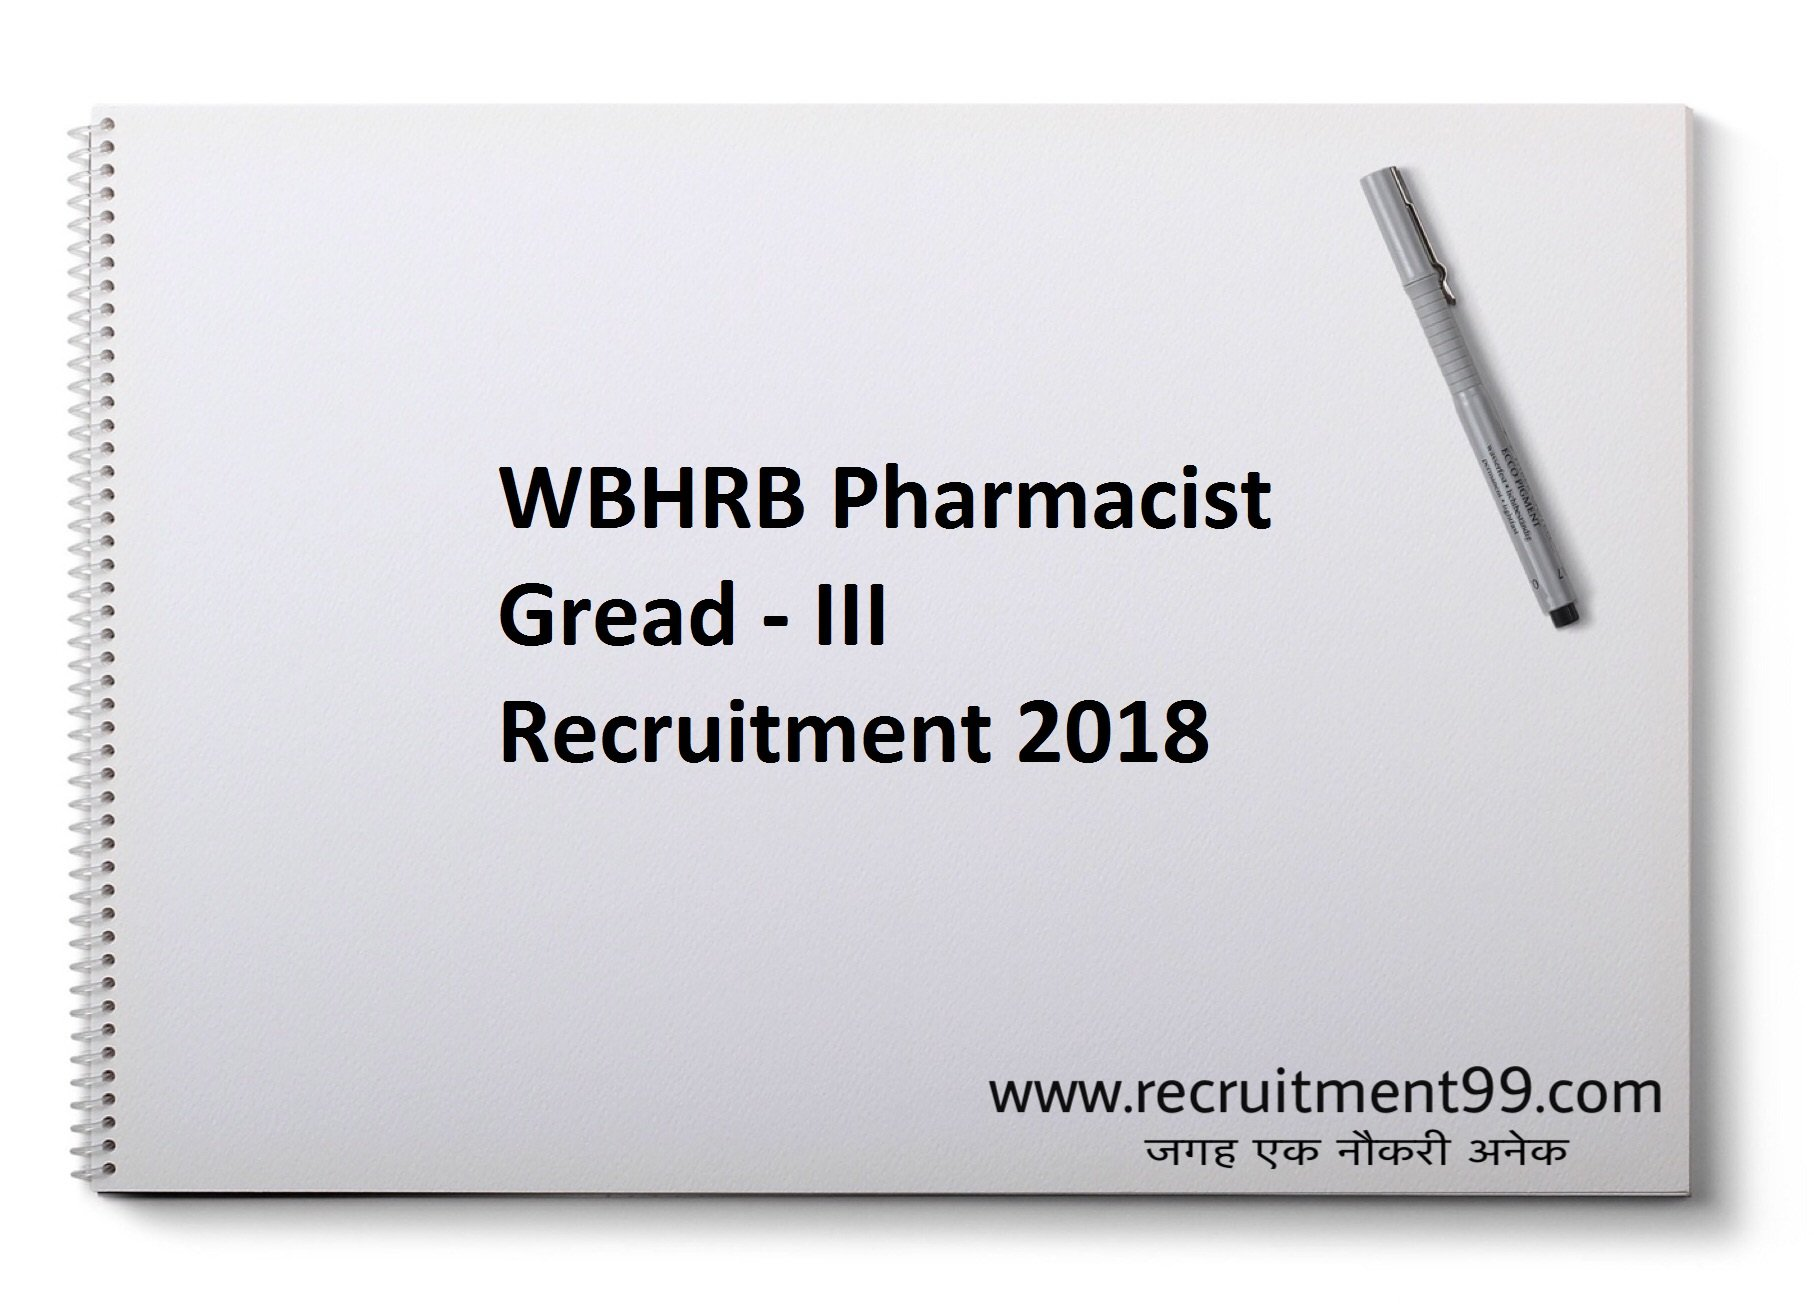 WBHRB Pharmacist Grade III Recruitment Admit Card Result 2018